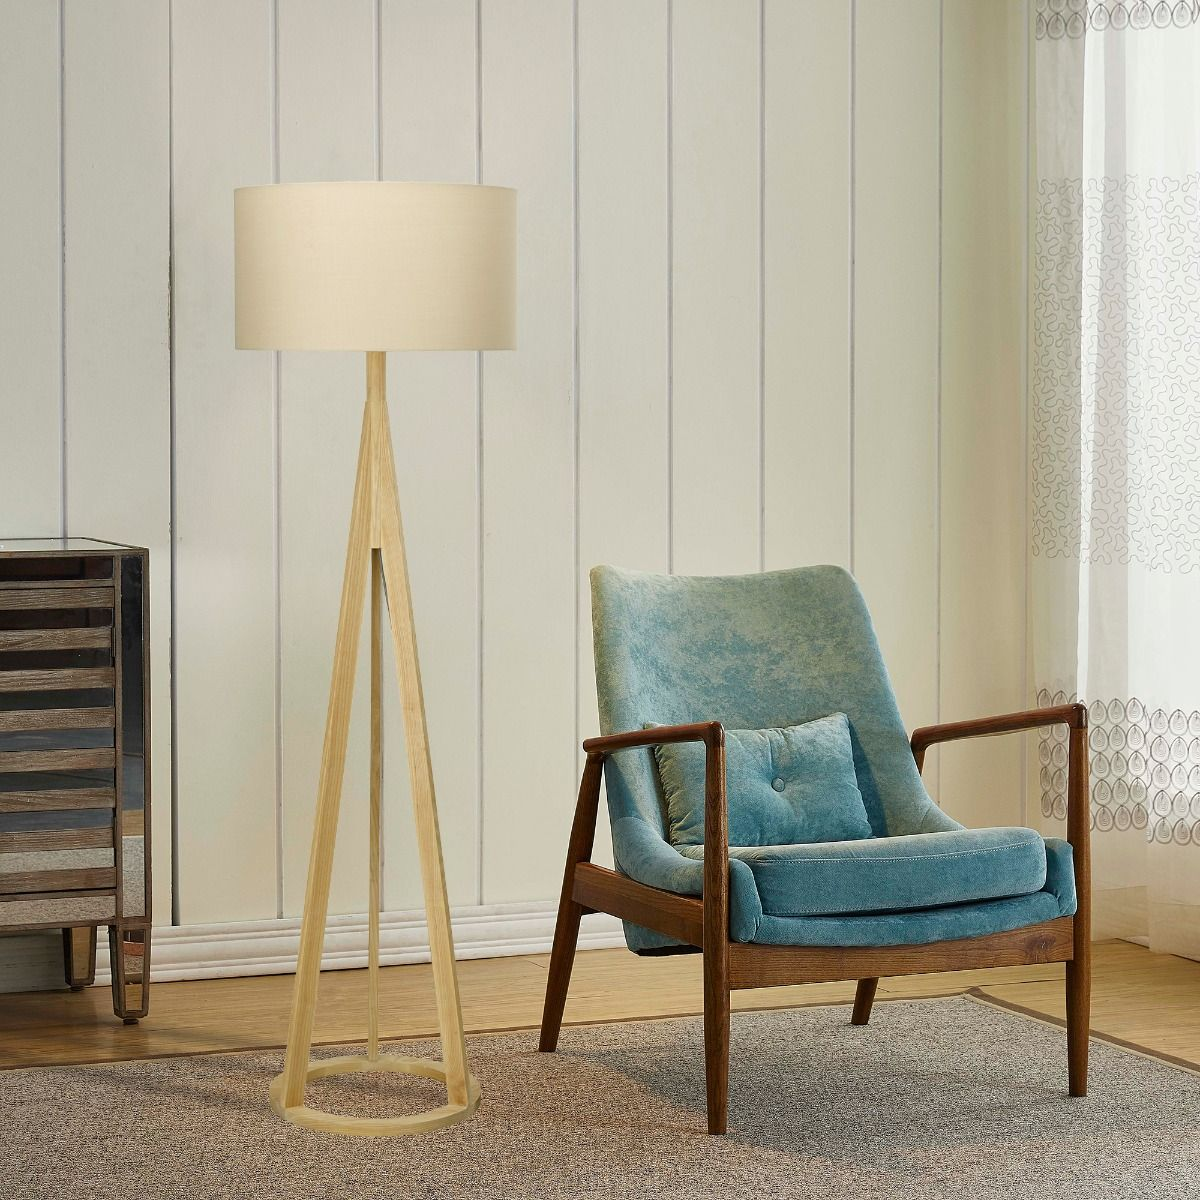 TRIPOD ASH Wooden floor lamp with grey